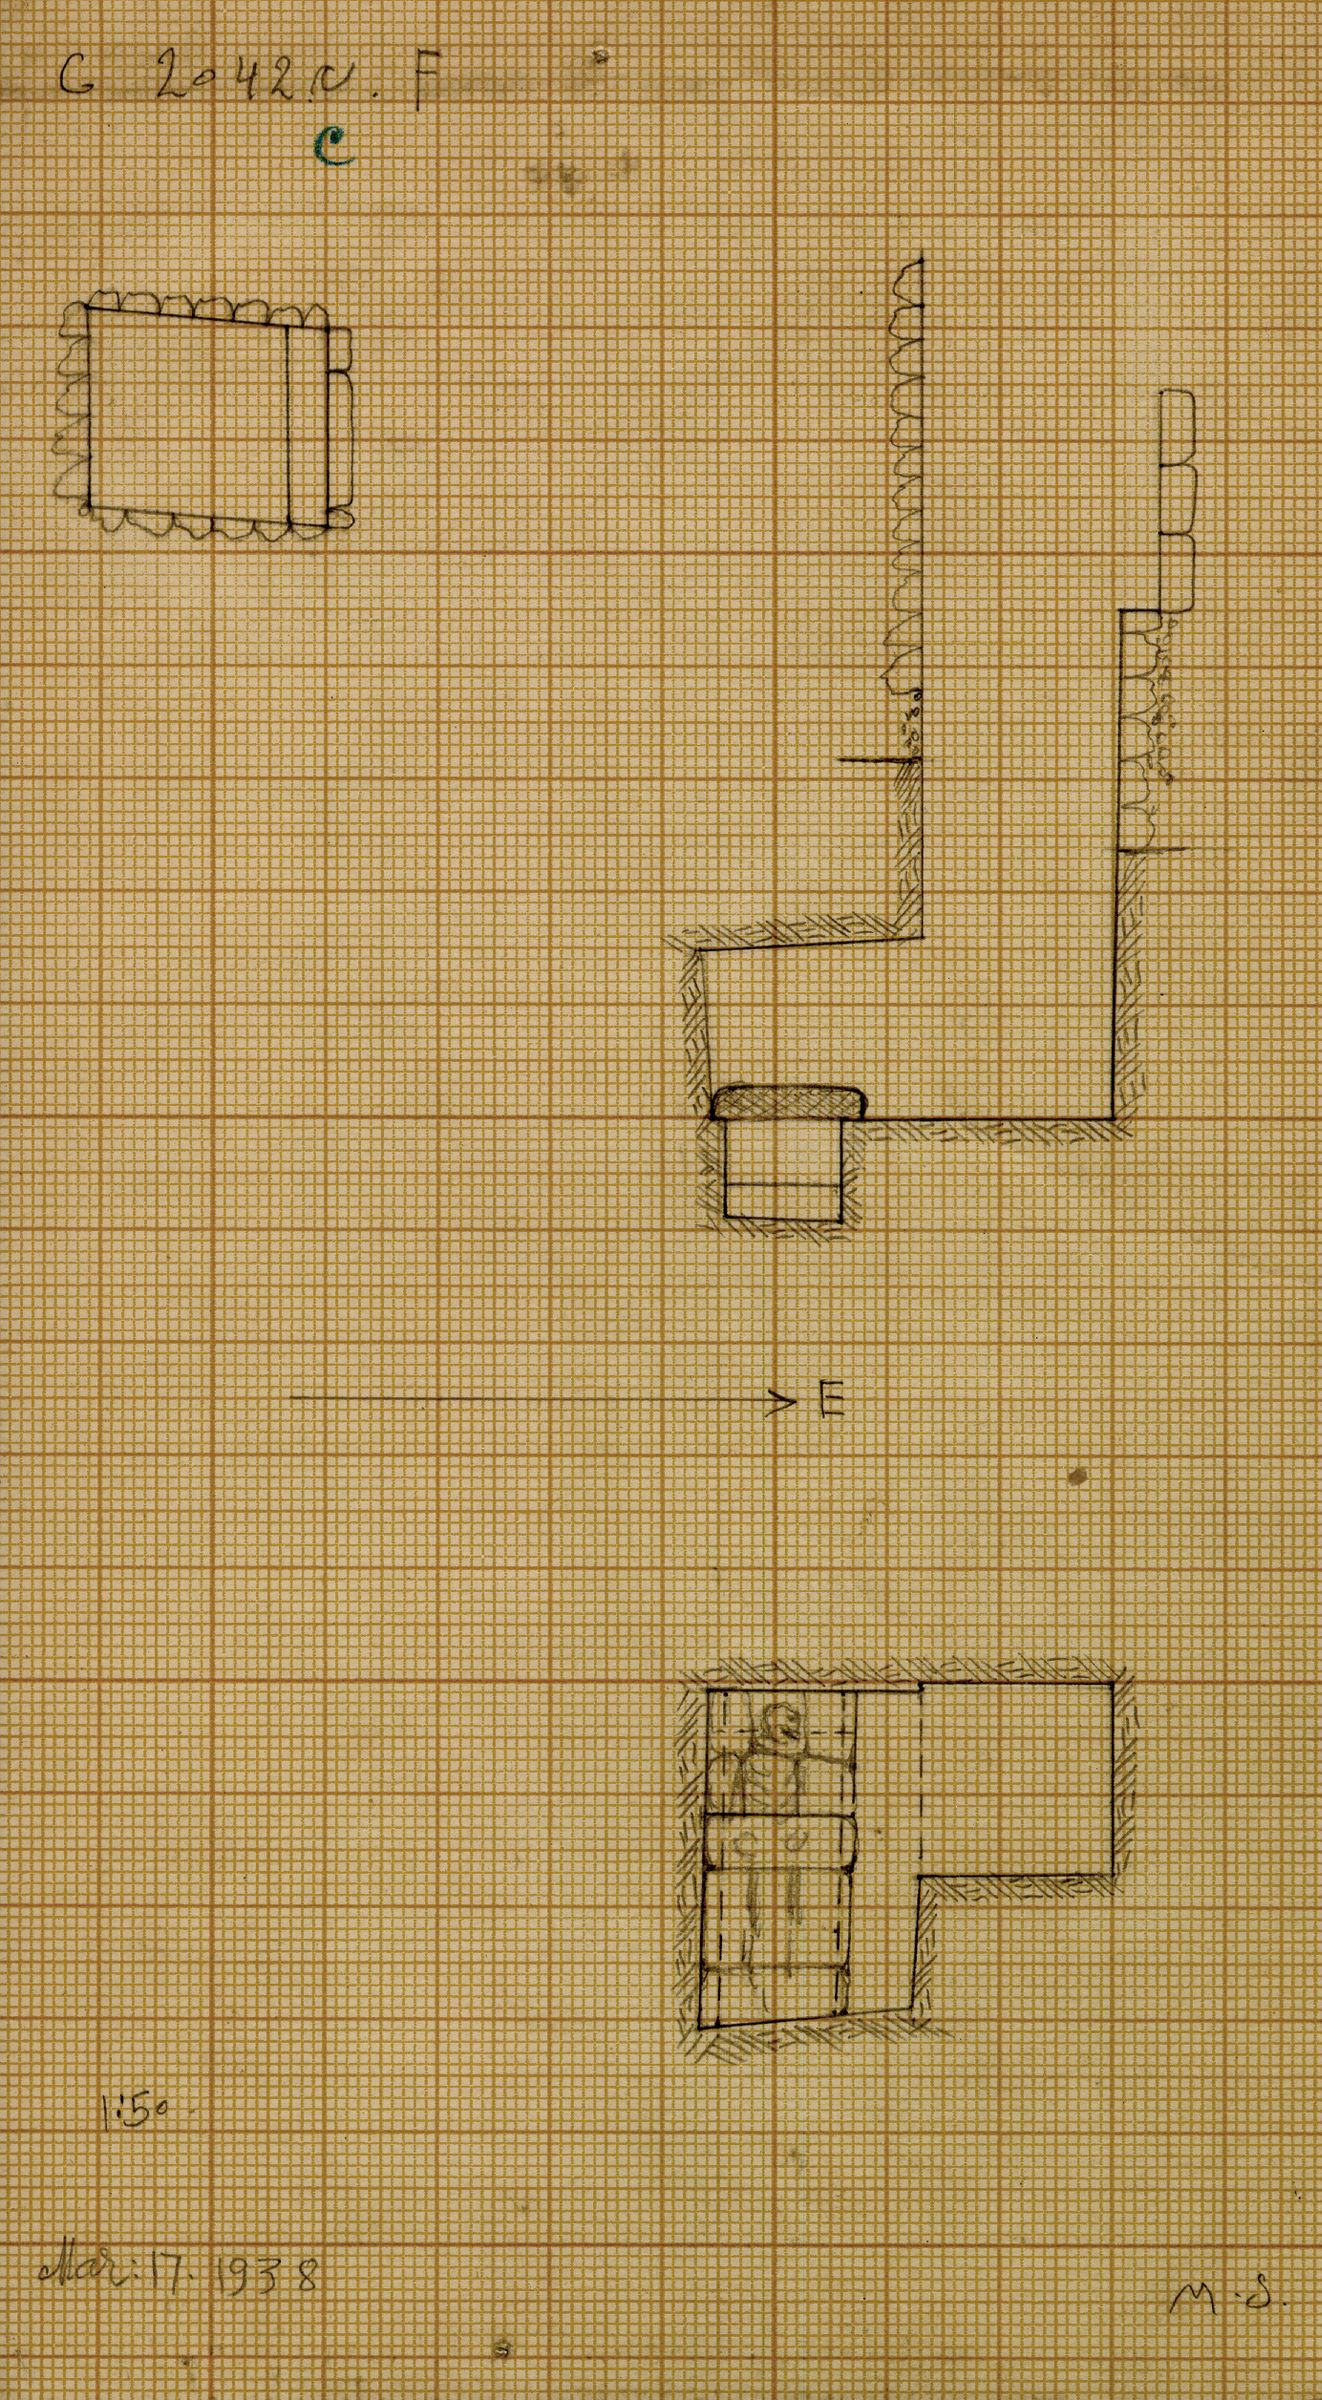 Maps and plans: G 2042c, Shaft F